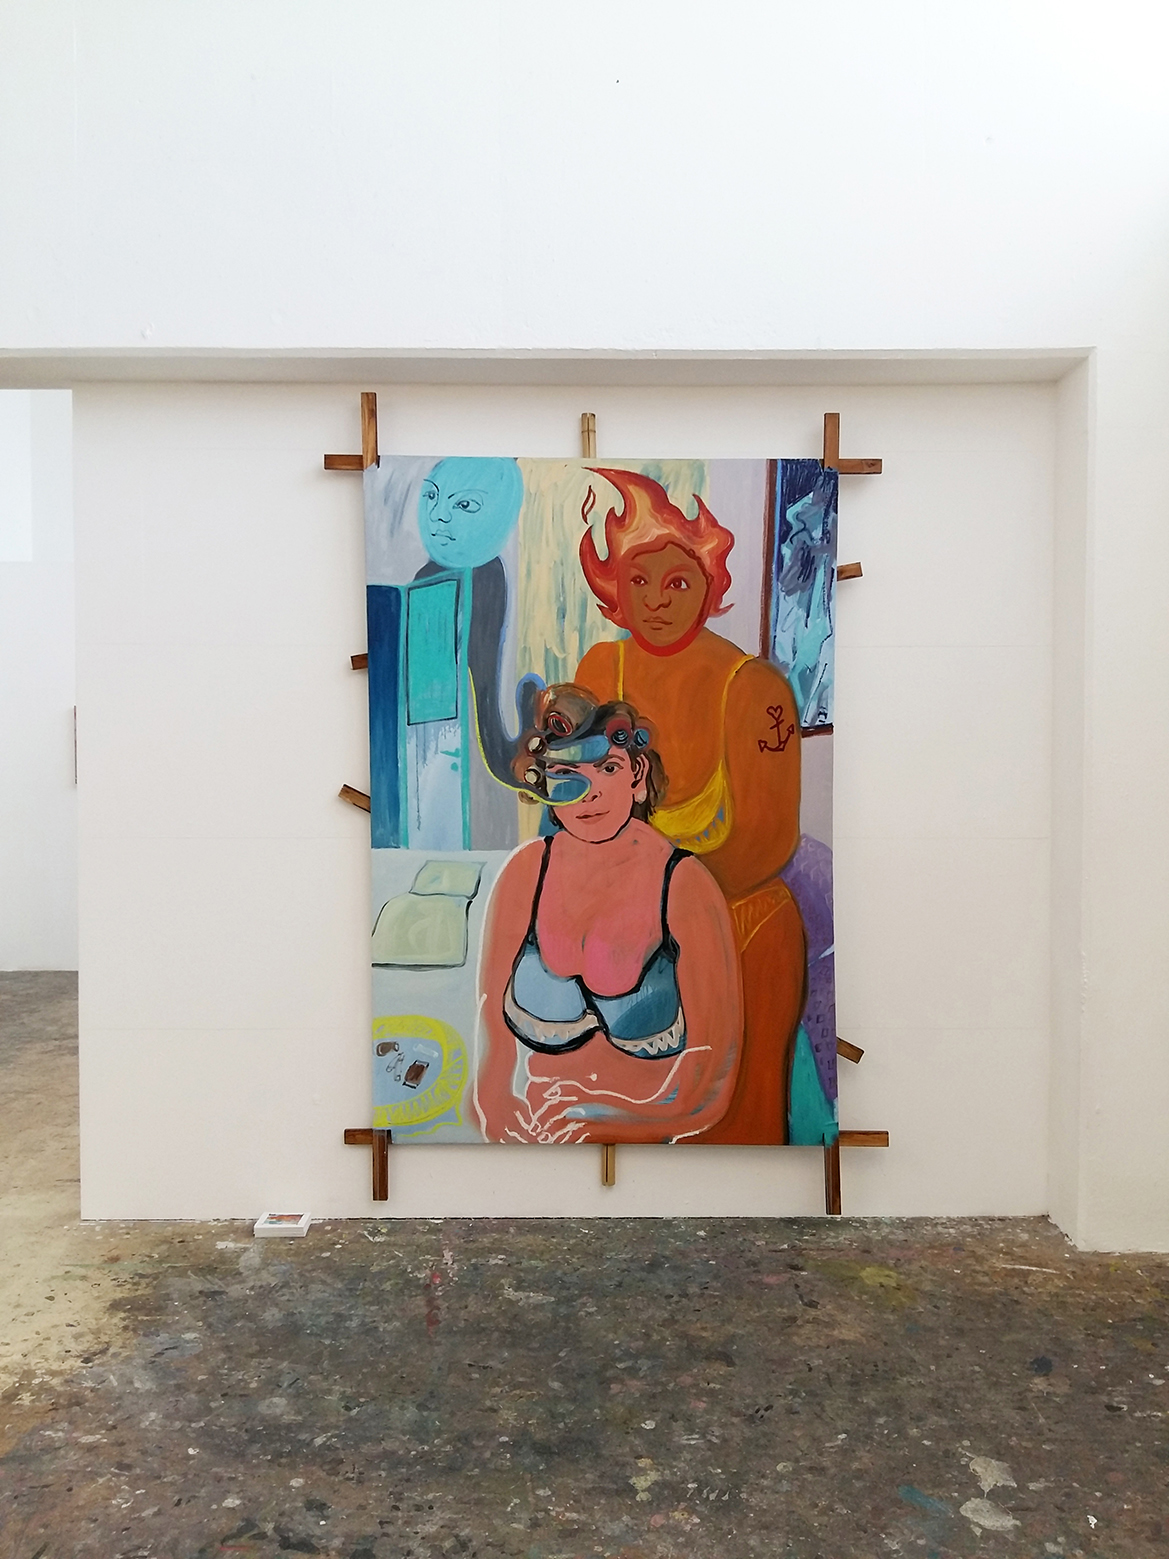 Install shot, Votre Dame, Turps Gallery, 2019